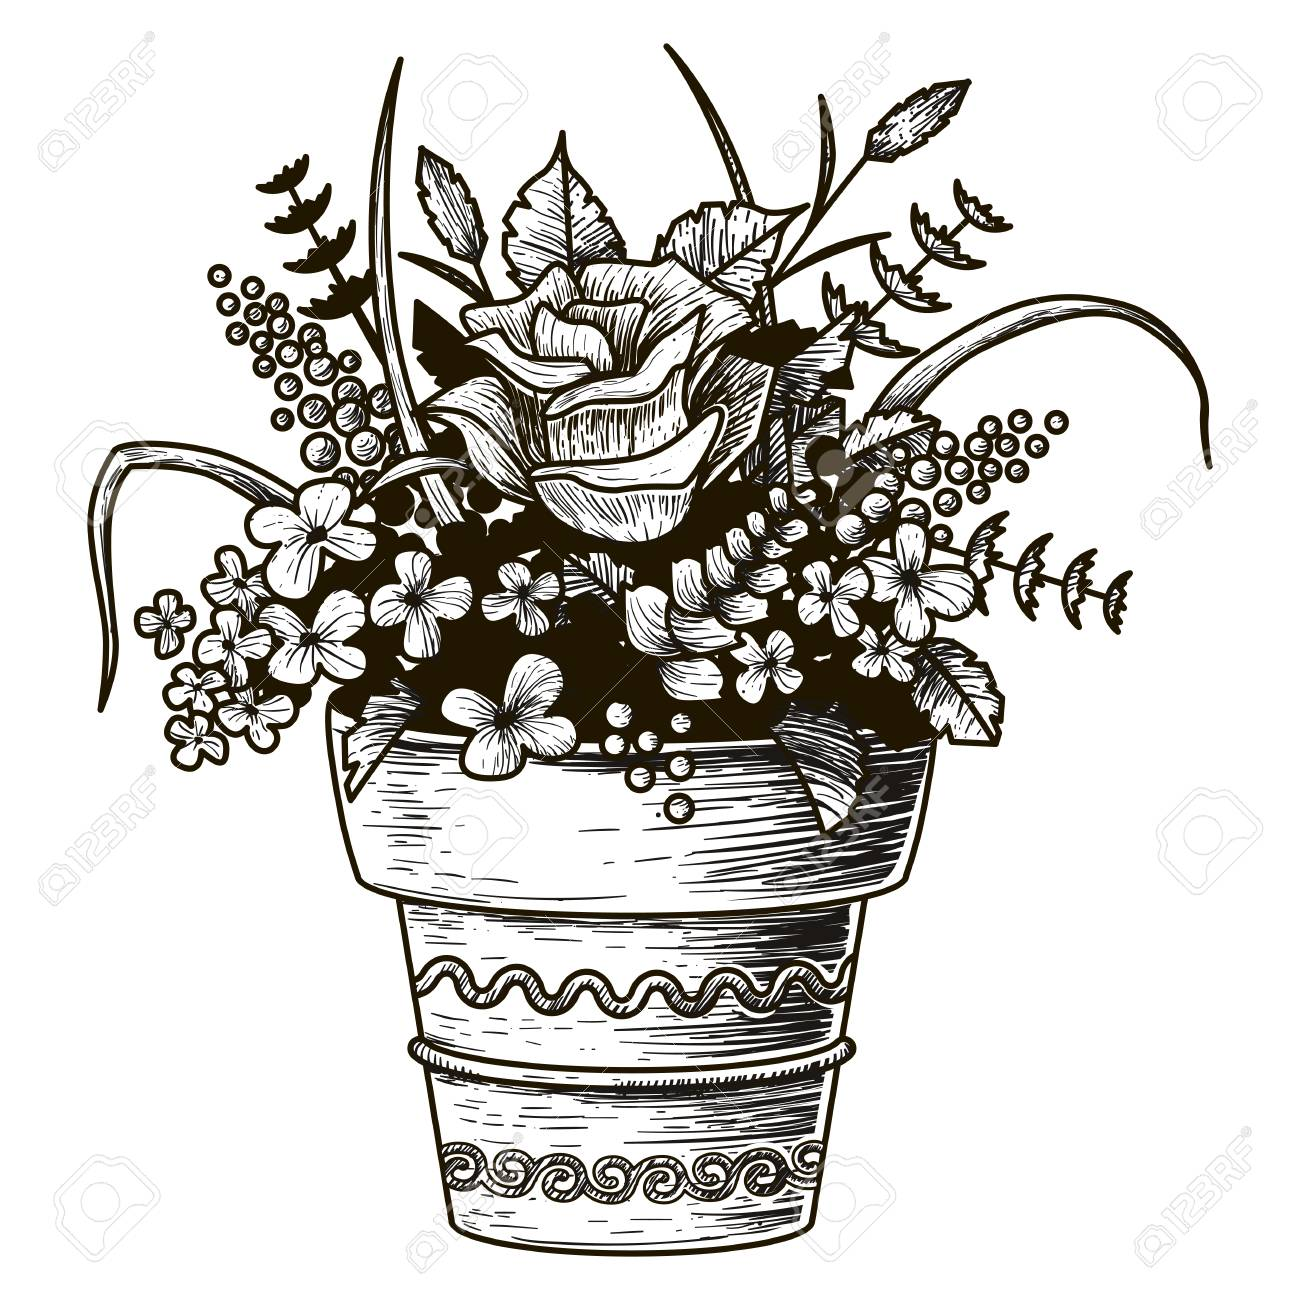 Flowers in a pot sketch illustration stock vector 81566172 sc 1 st 123rf com